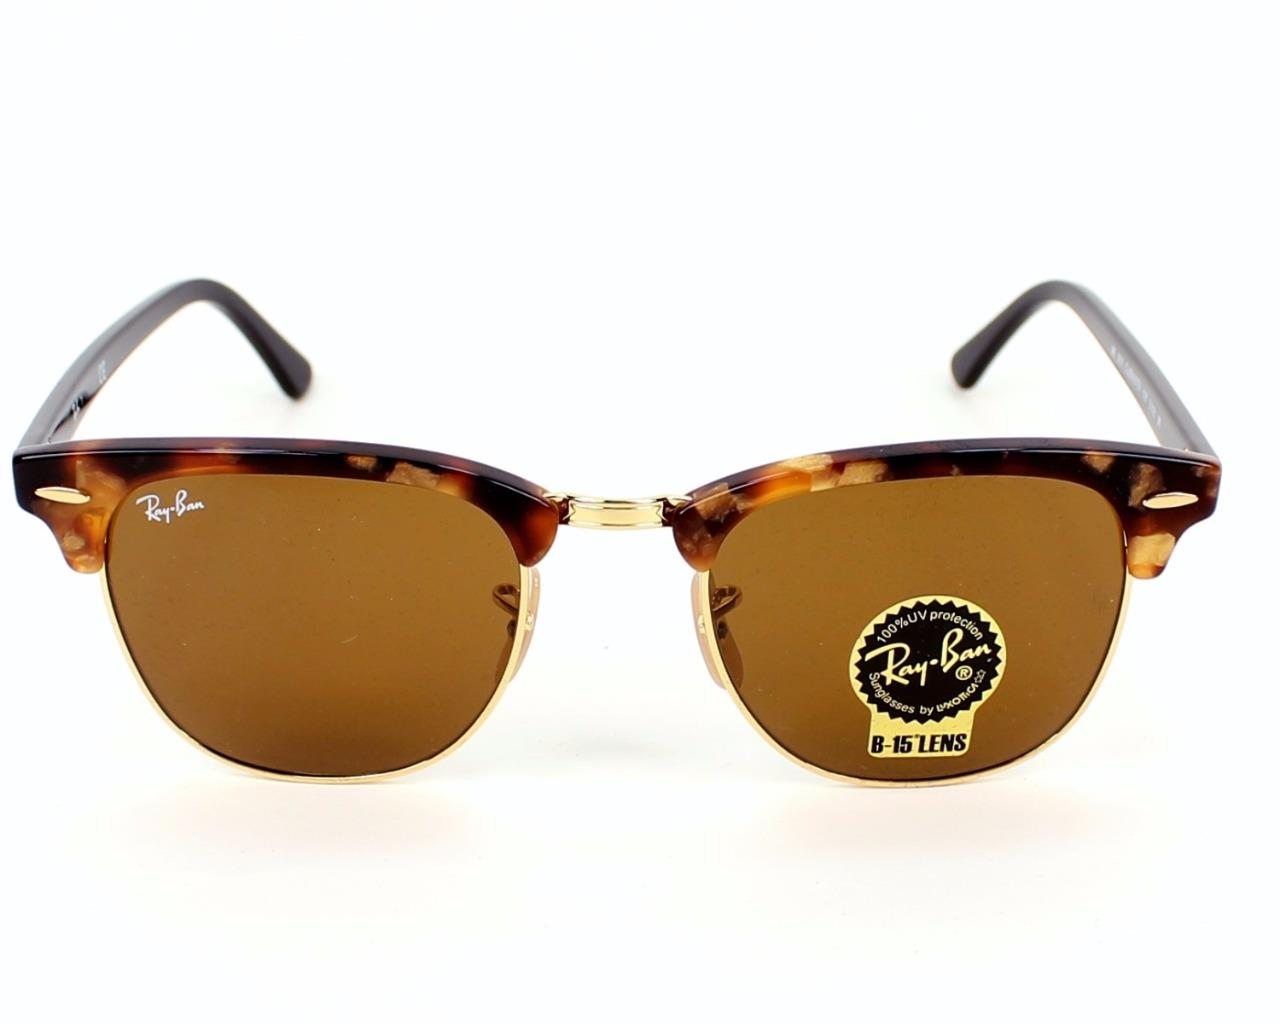 a954d401193 Ray Ban 100 Uv Protection Sunglasses By Luxottica « Heritage Malta